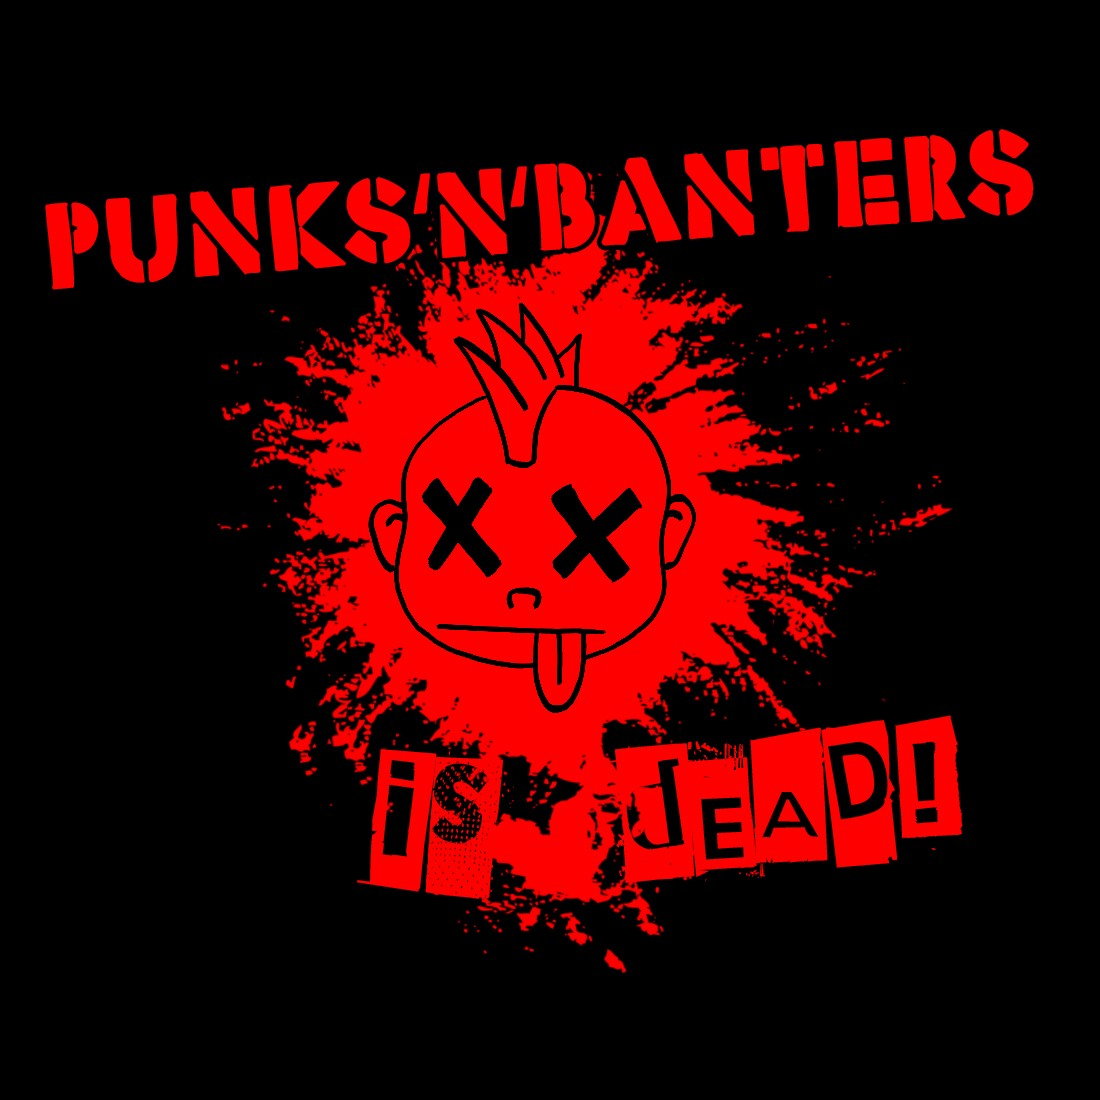 Punks'n'Banters is Dead